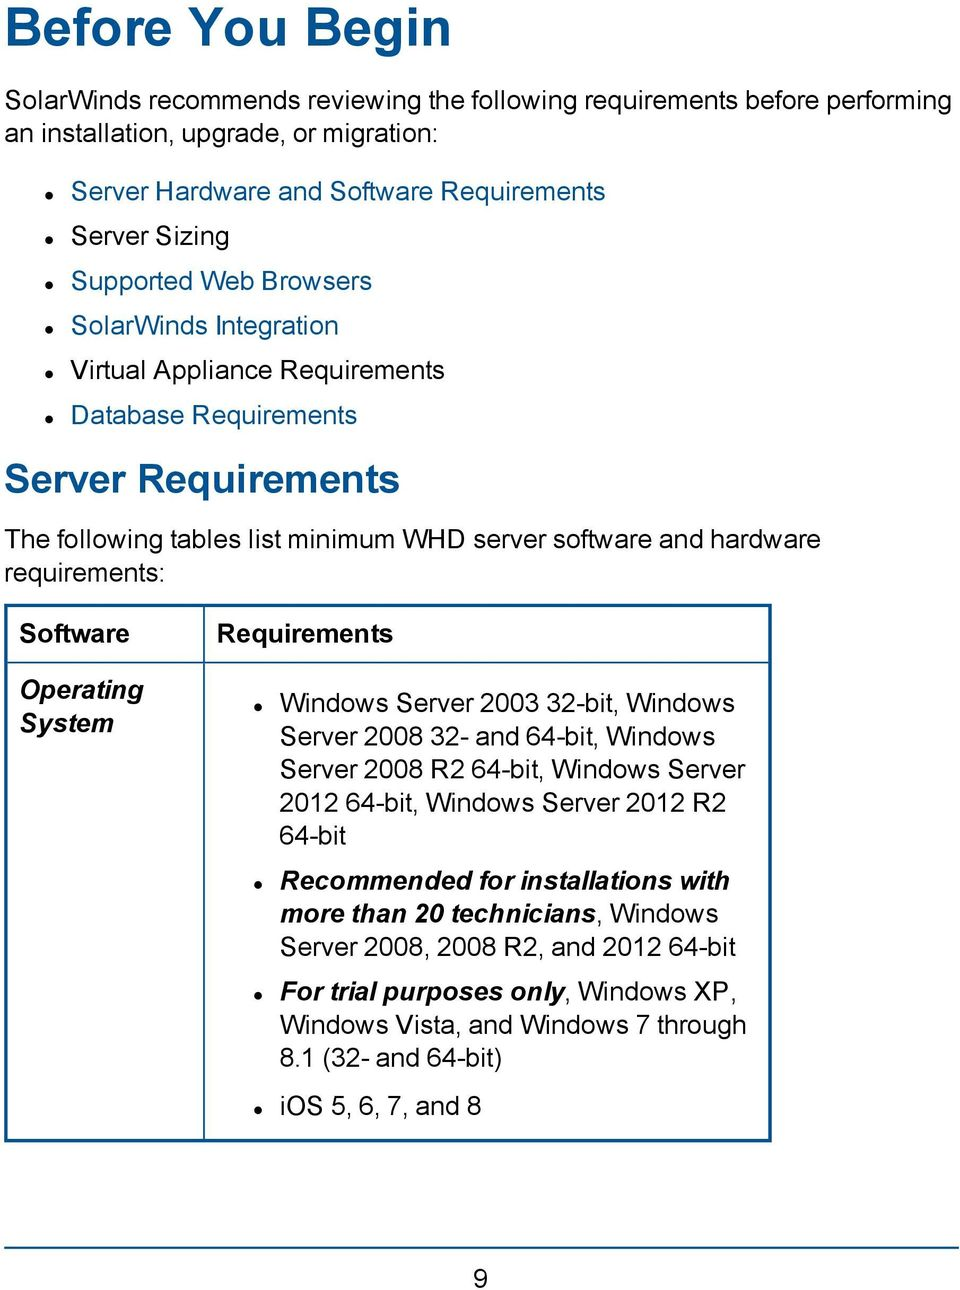 Operating System Requirements Windows Server 2003 32-bit, Windows Server 2008 32- and 64-bit, Windows Server 2008 R2 64-bit, Windows Server 2012 64-bit, Windows Server 2012 R2 64-bit Recommended for